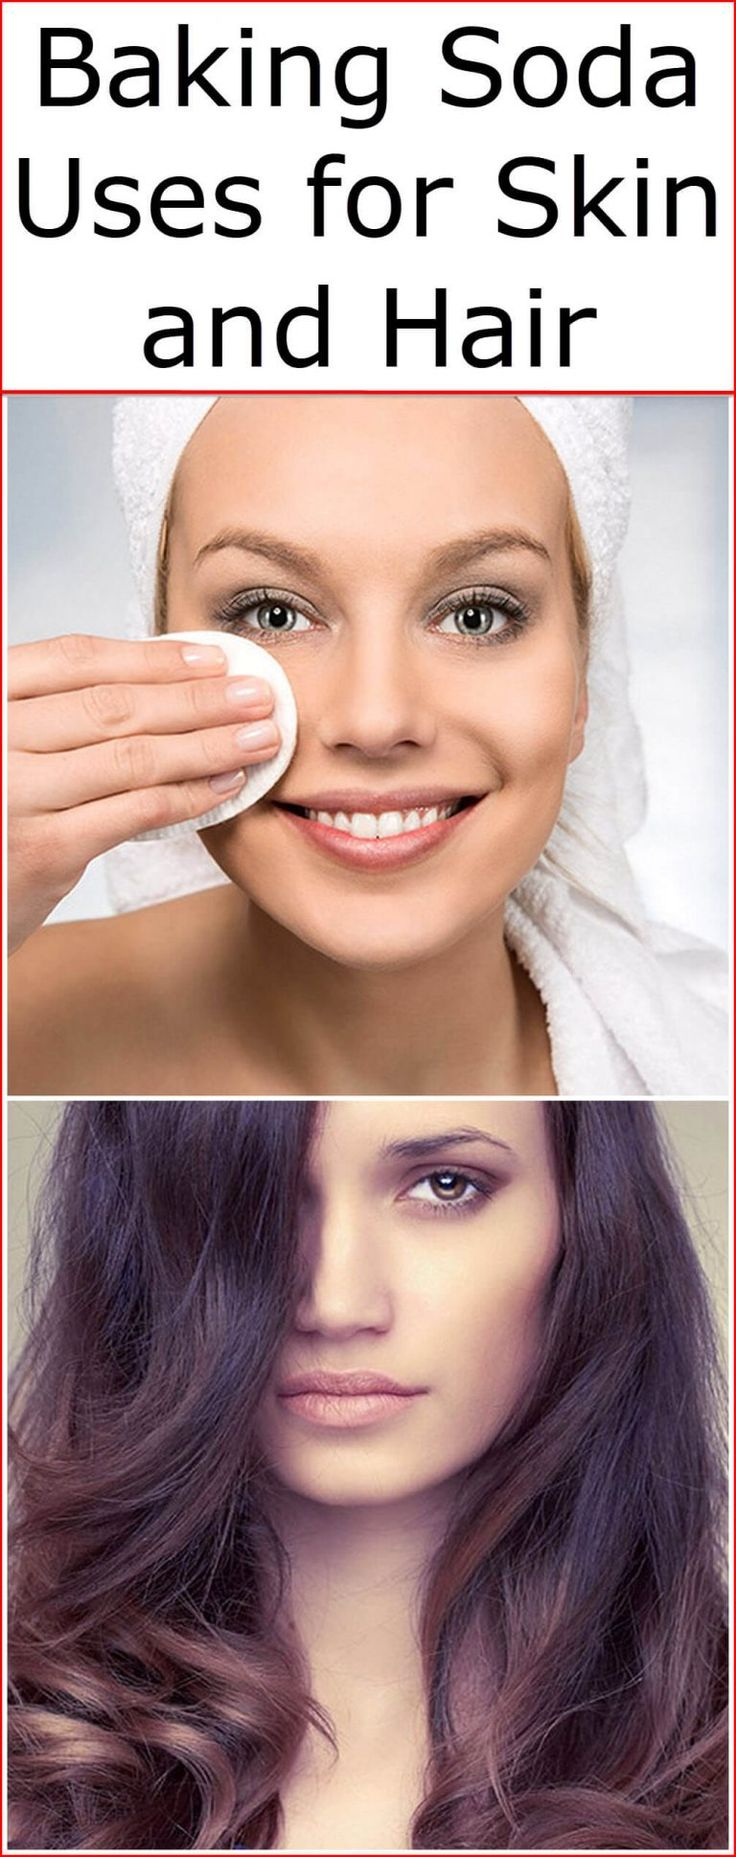 Baking Soda Uses for Skin and Hair